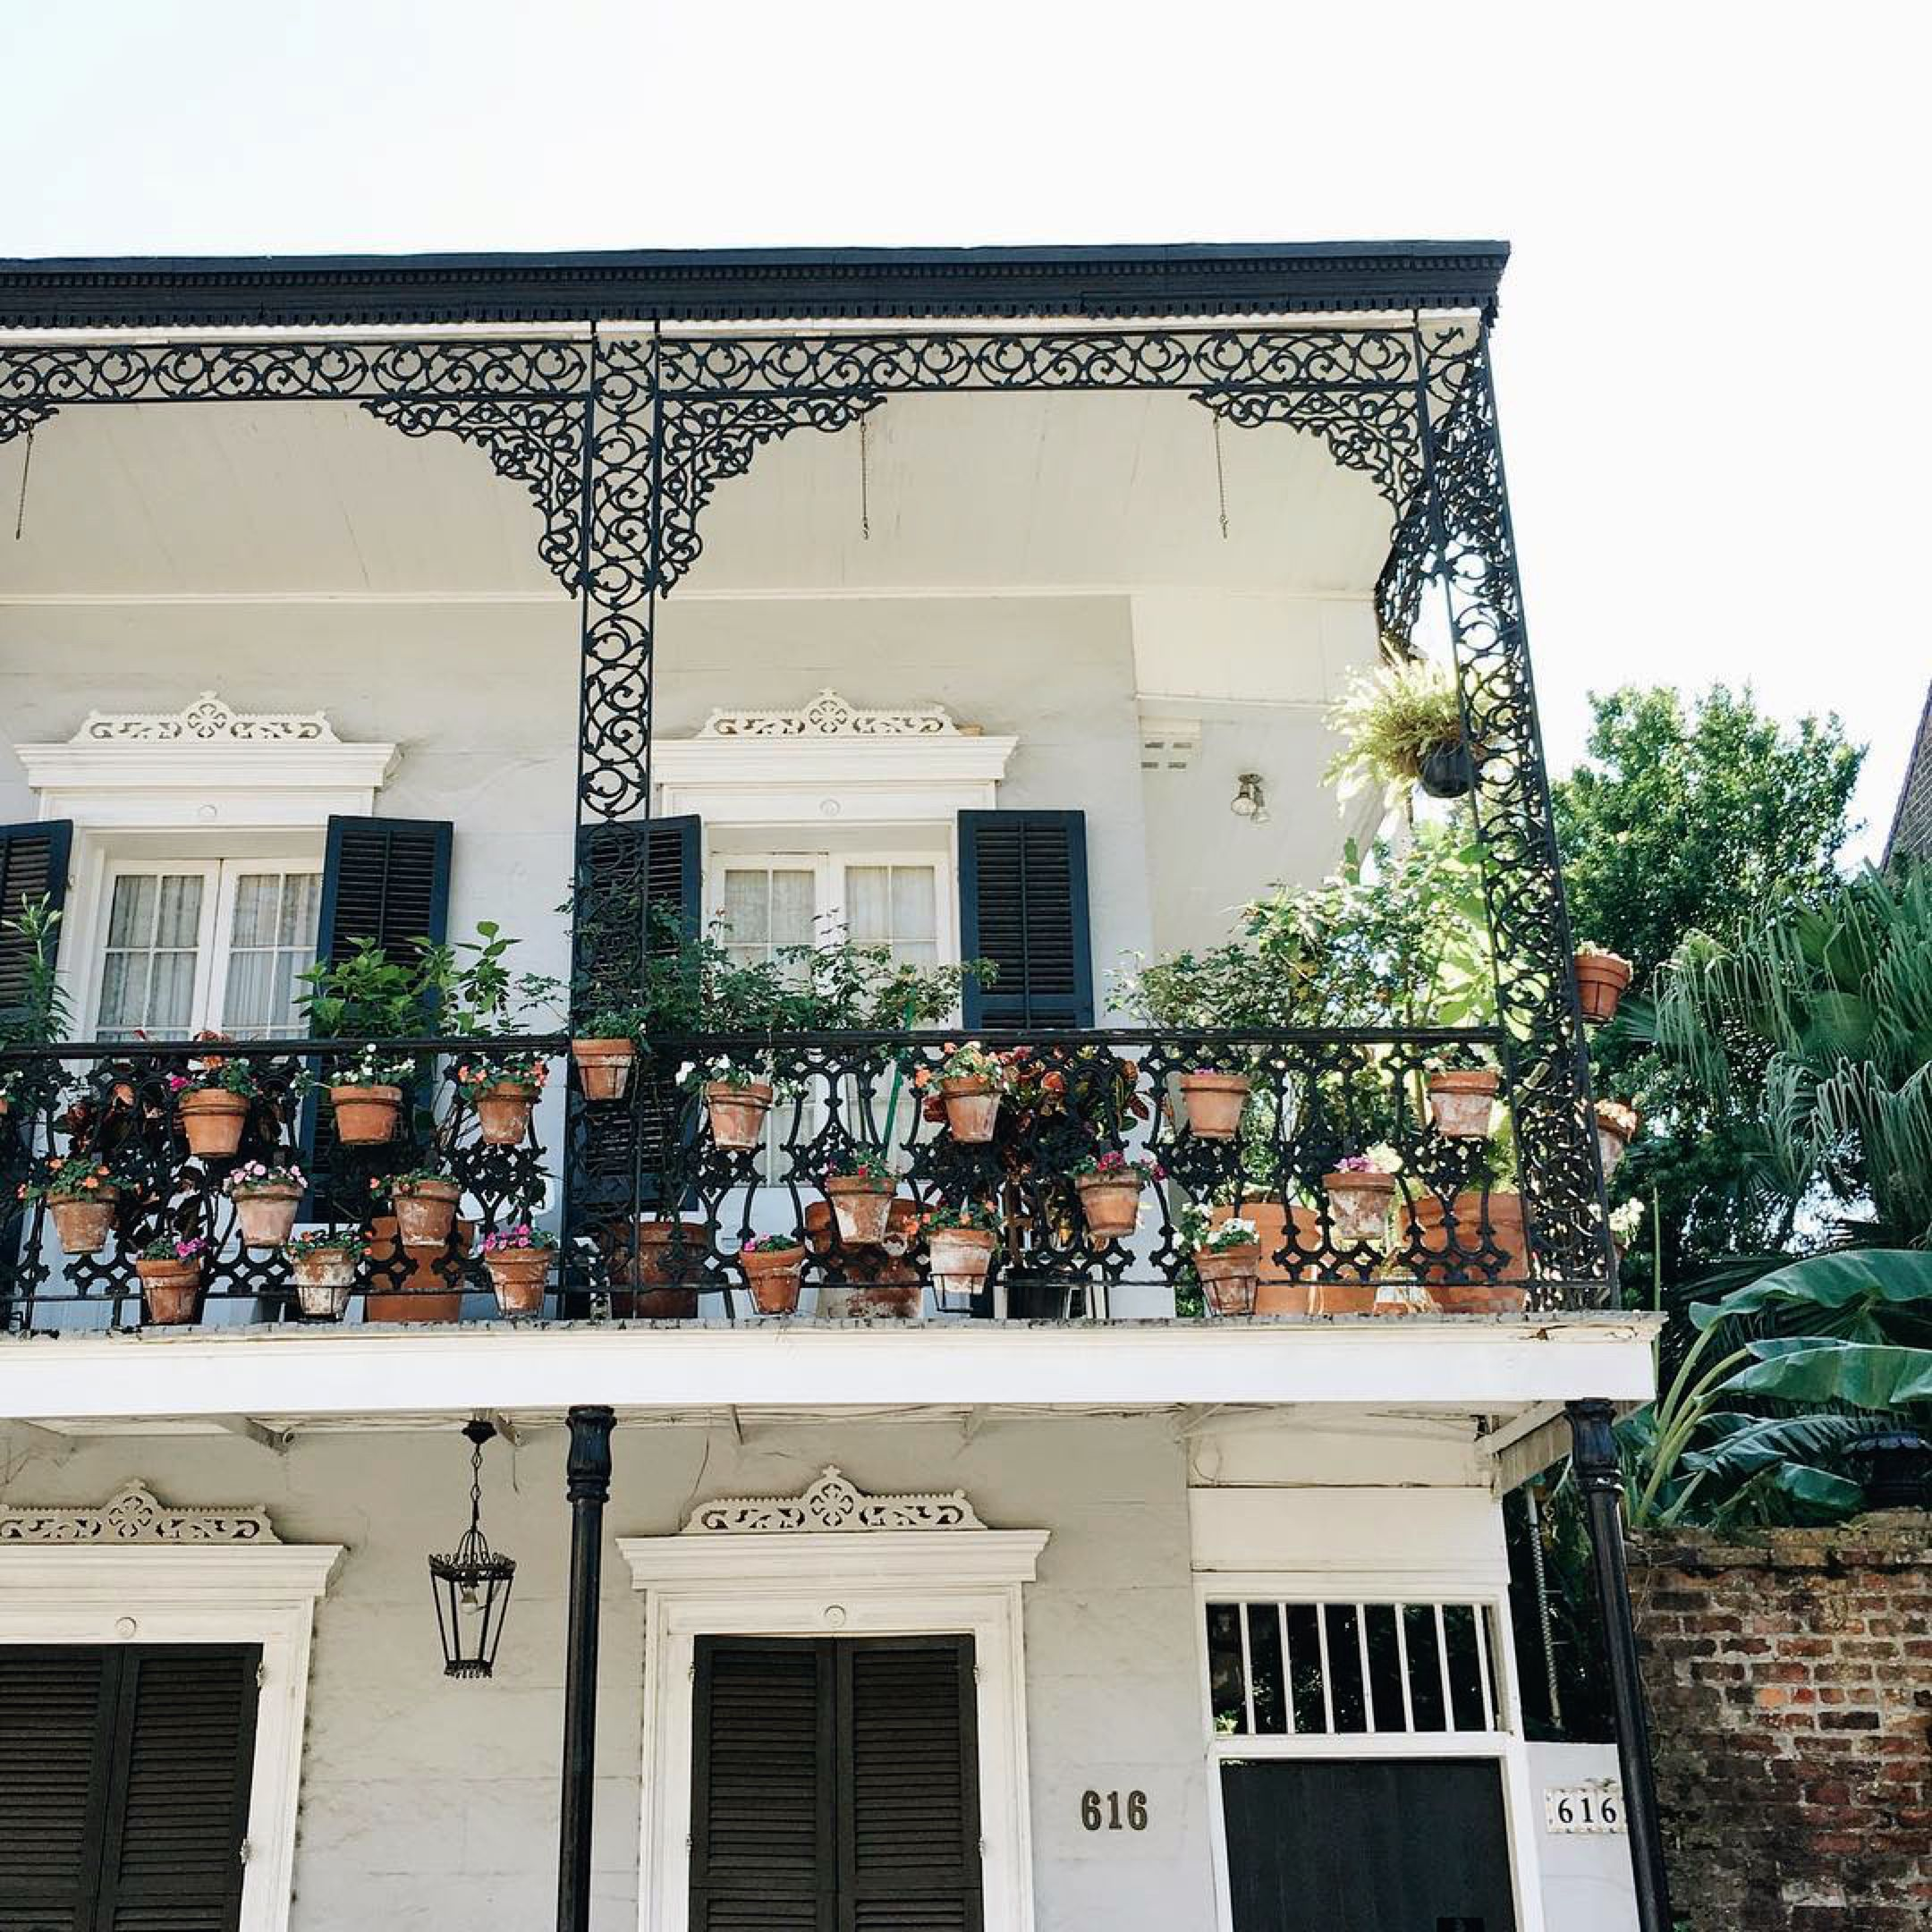 New Orleans, Louisiana 2016 | Vibes | Pinterest | New Orleans ... on getting ready for 2016, house plans for 2016, new plans for 2015,